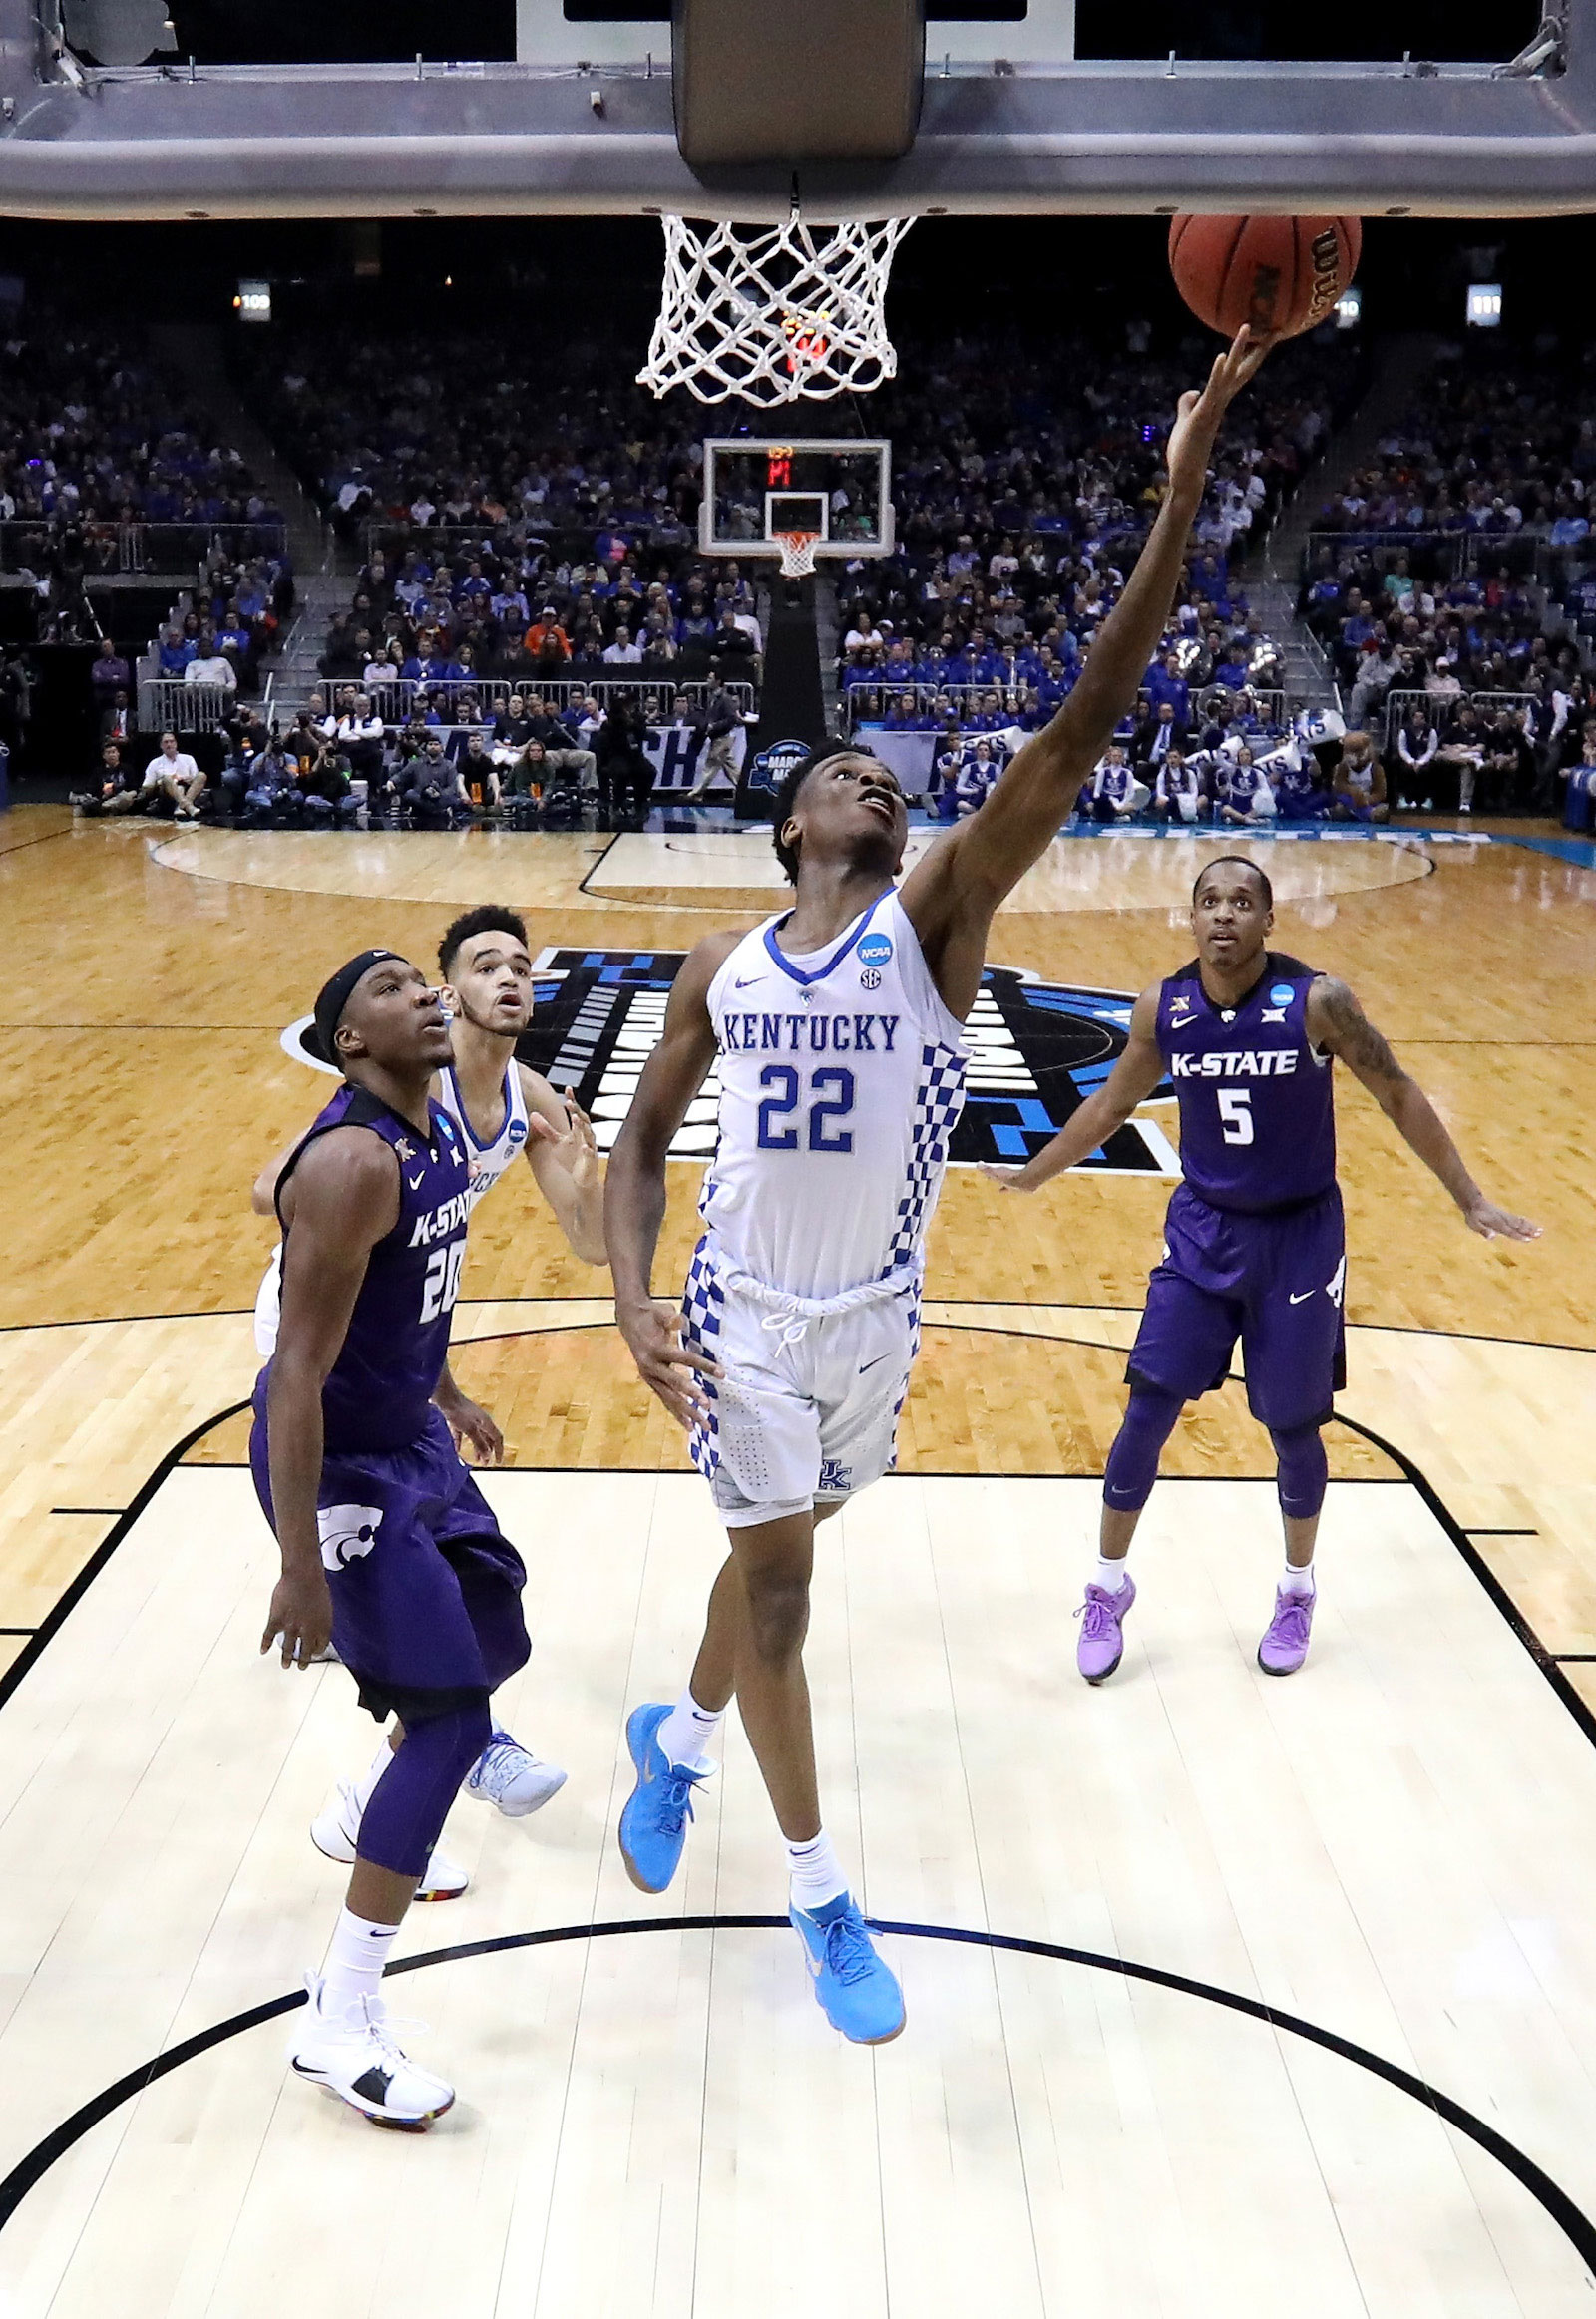 Shai Gilgeous-Alexander #22 of the Kentucky Wildcats shoots against Xavier Sneed #20 of the Kansas State Wildcats in the first half during the 2018 NCAA Men's Basketball Tournament South Regional at Philips Arena on March 22, 2018 in Atlanta, Georgia.